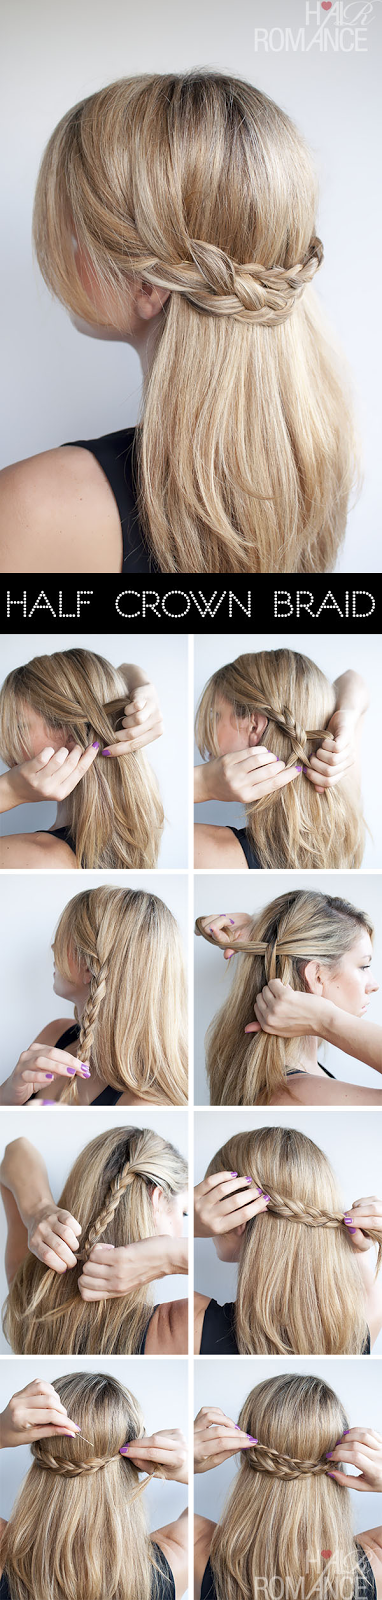 Half Crown Braid Easy Way to get such Hair style